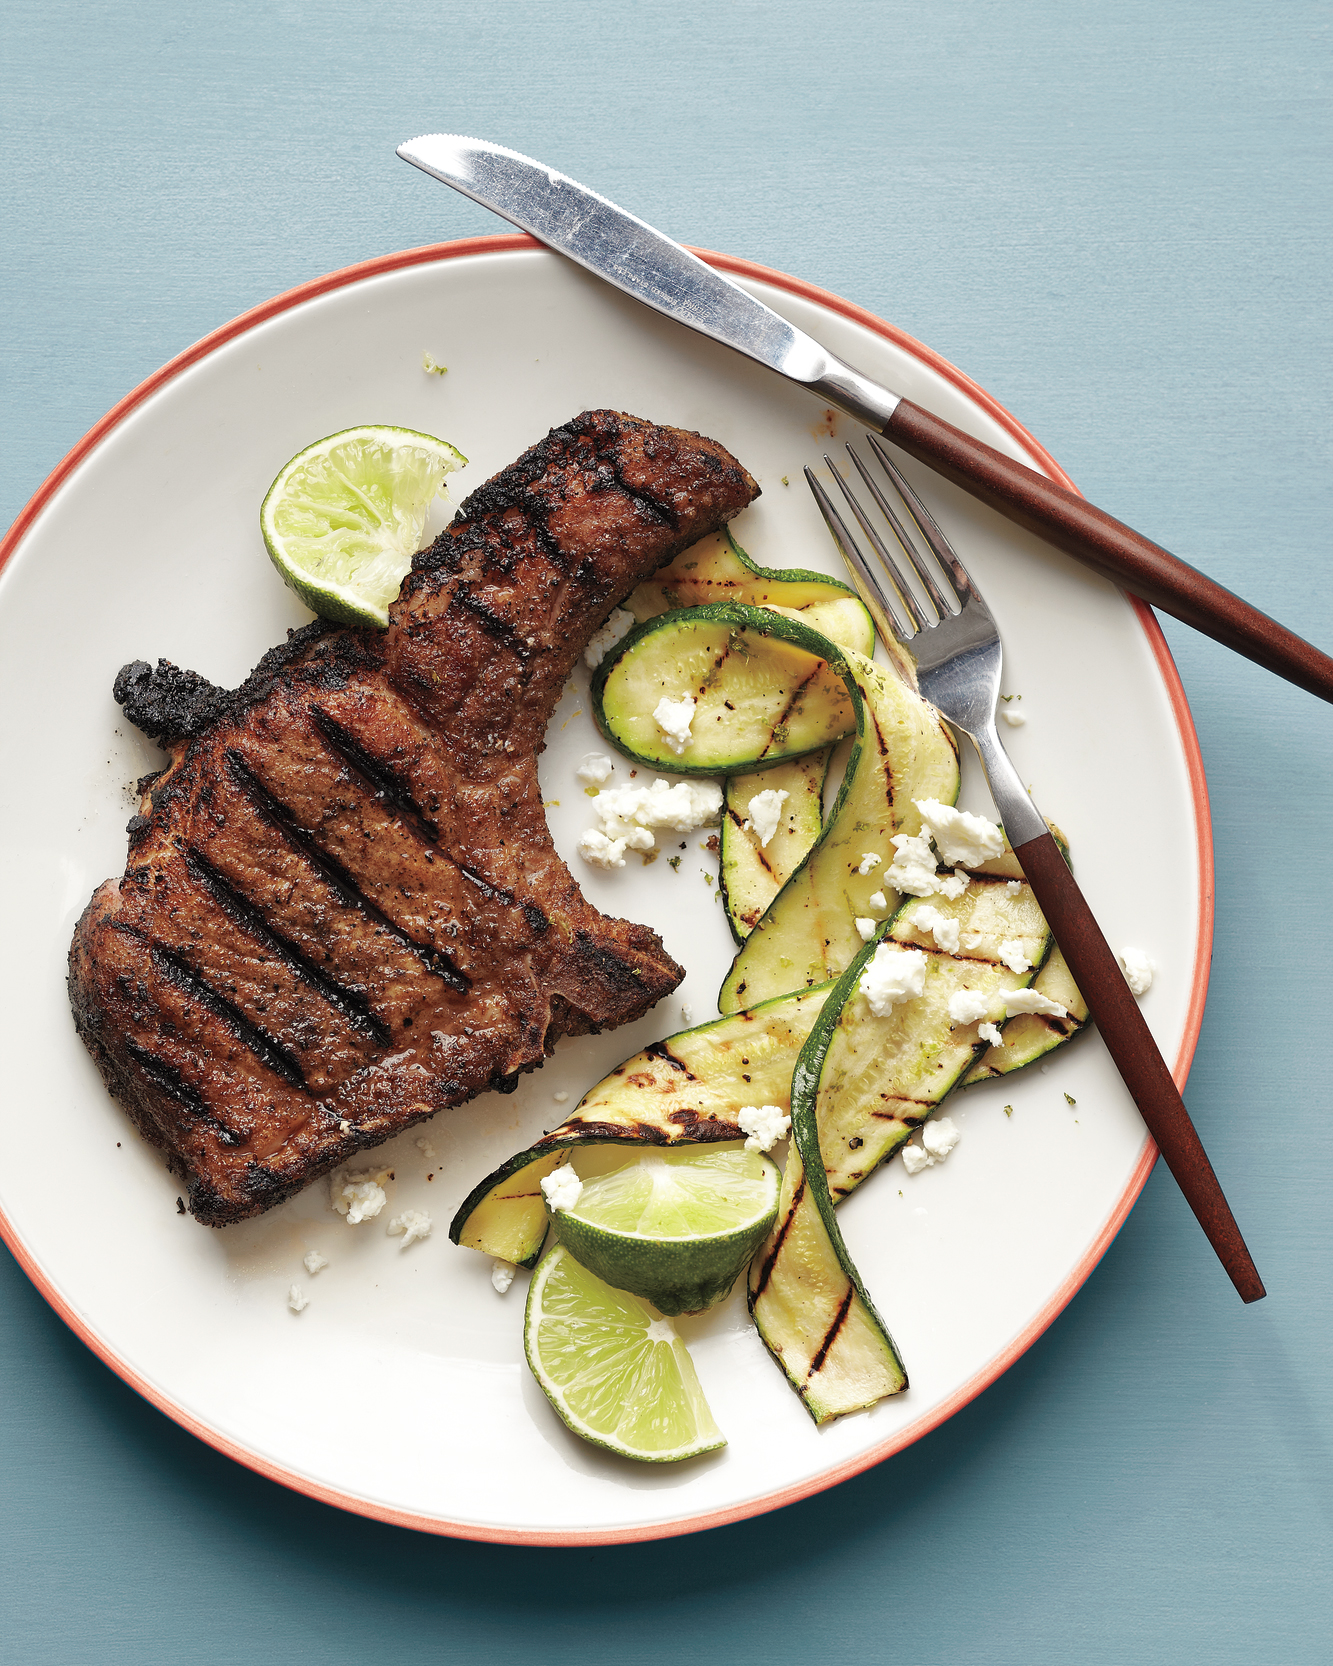 Spice-Rubbed Pork Chops with Grilled Zucchini